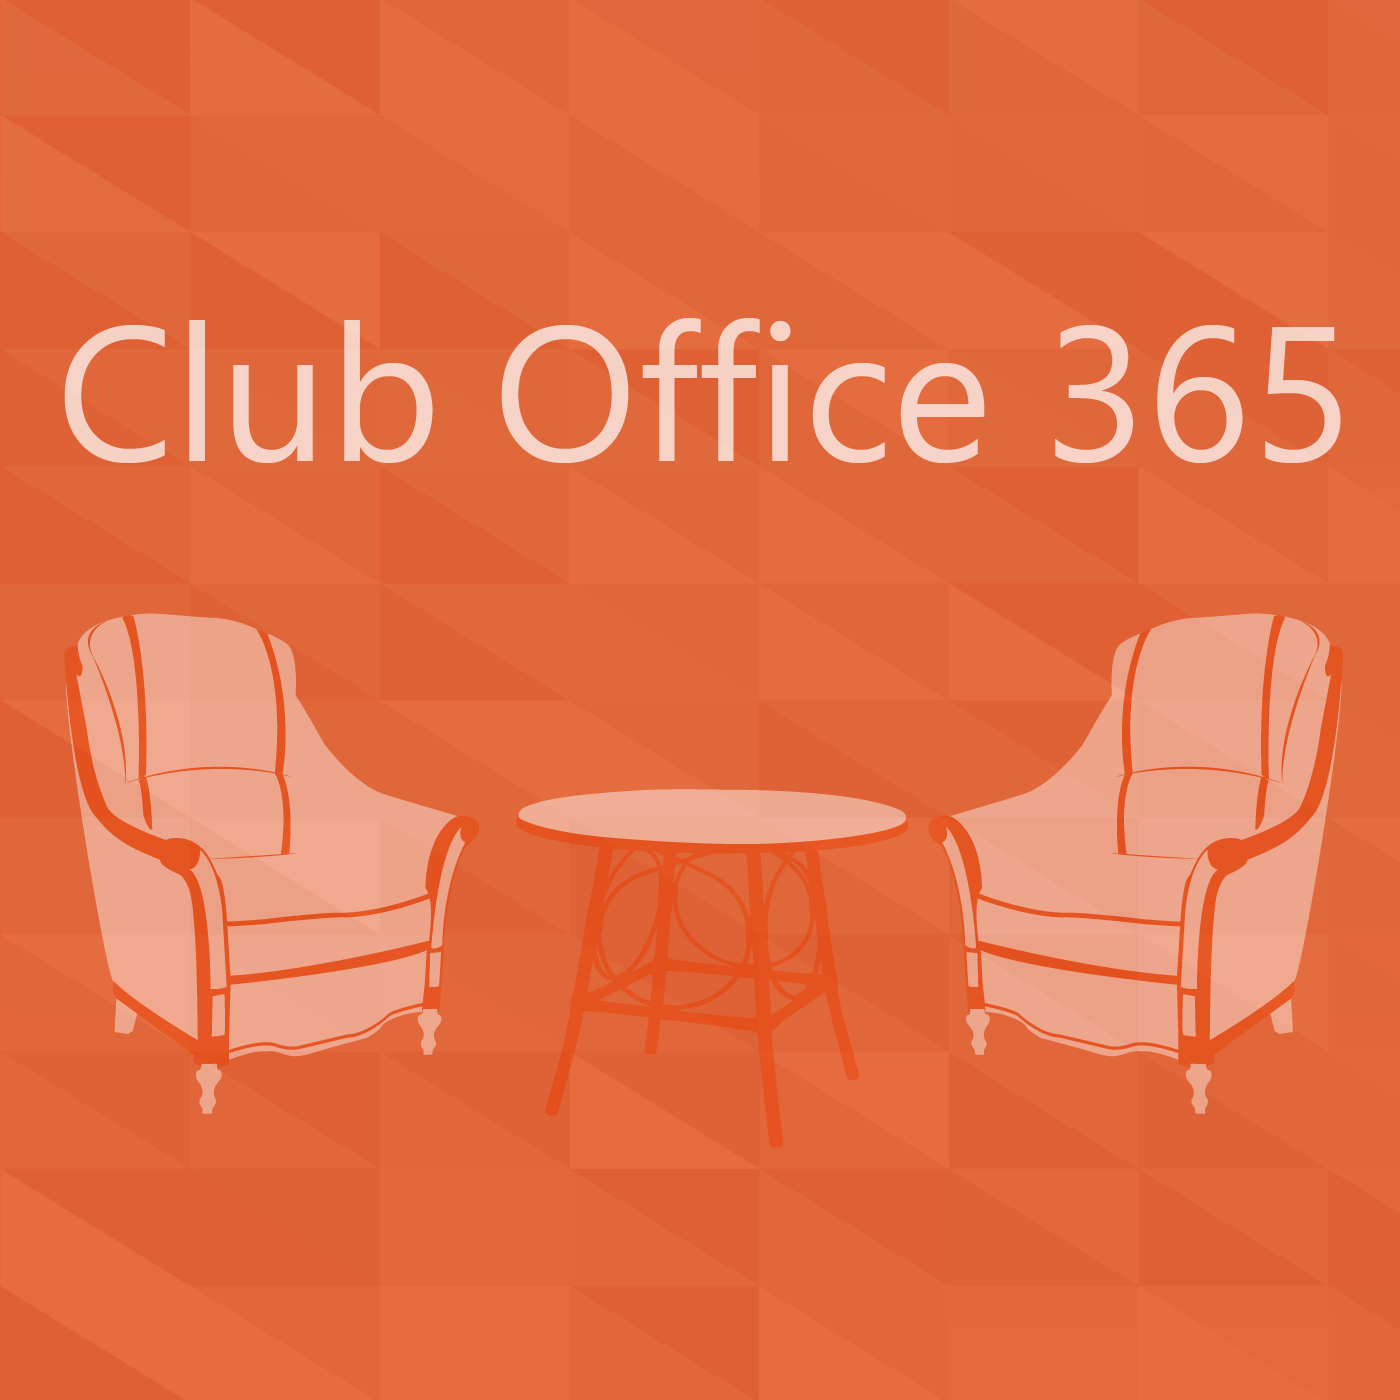 Cluboffice365 Der Podcast Mit Martina Grom Und Michael Greth